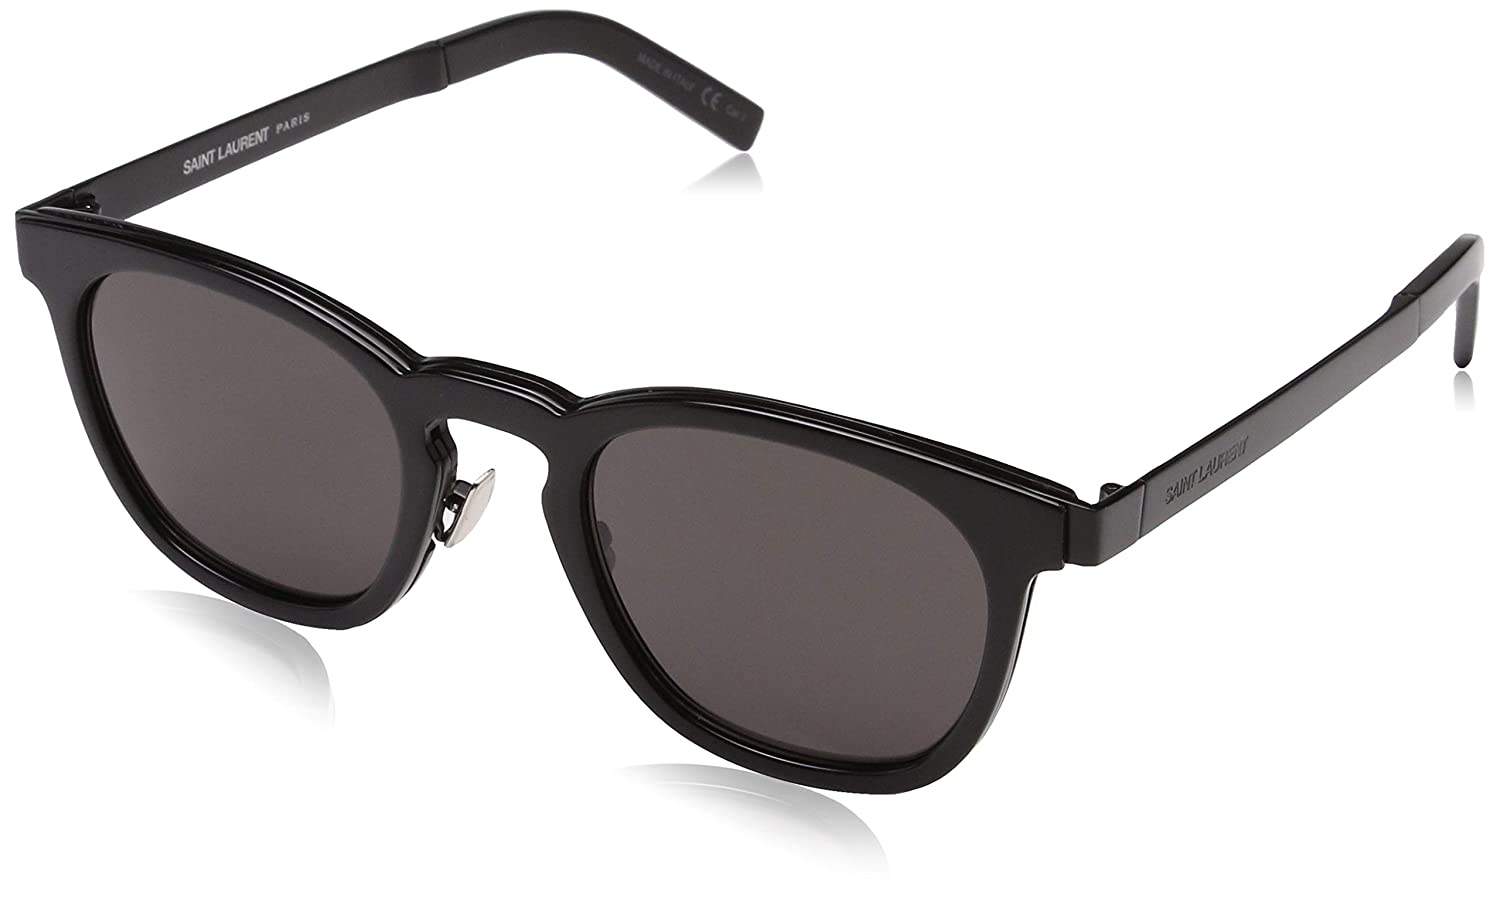 ffbb1fbbf7f07 Saint Laurent SL 28 COMBI 002 Black Round Sunglasses at Amazon Men s  Clothing store